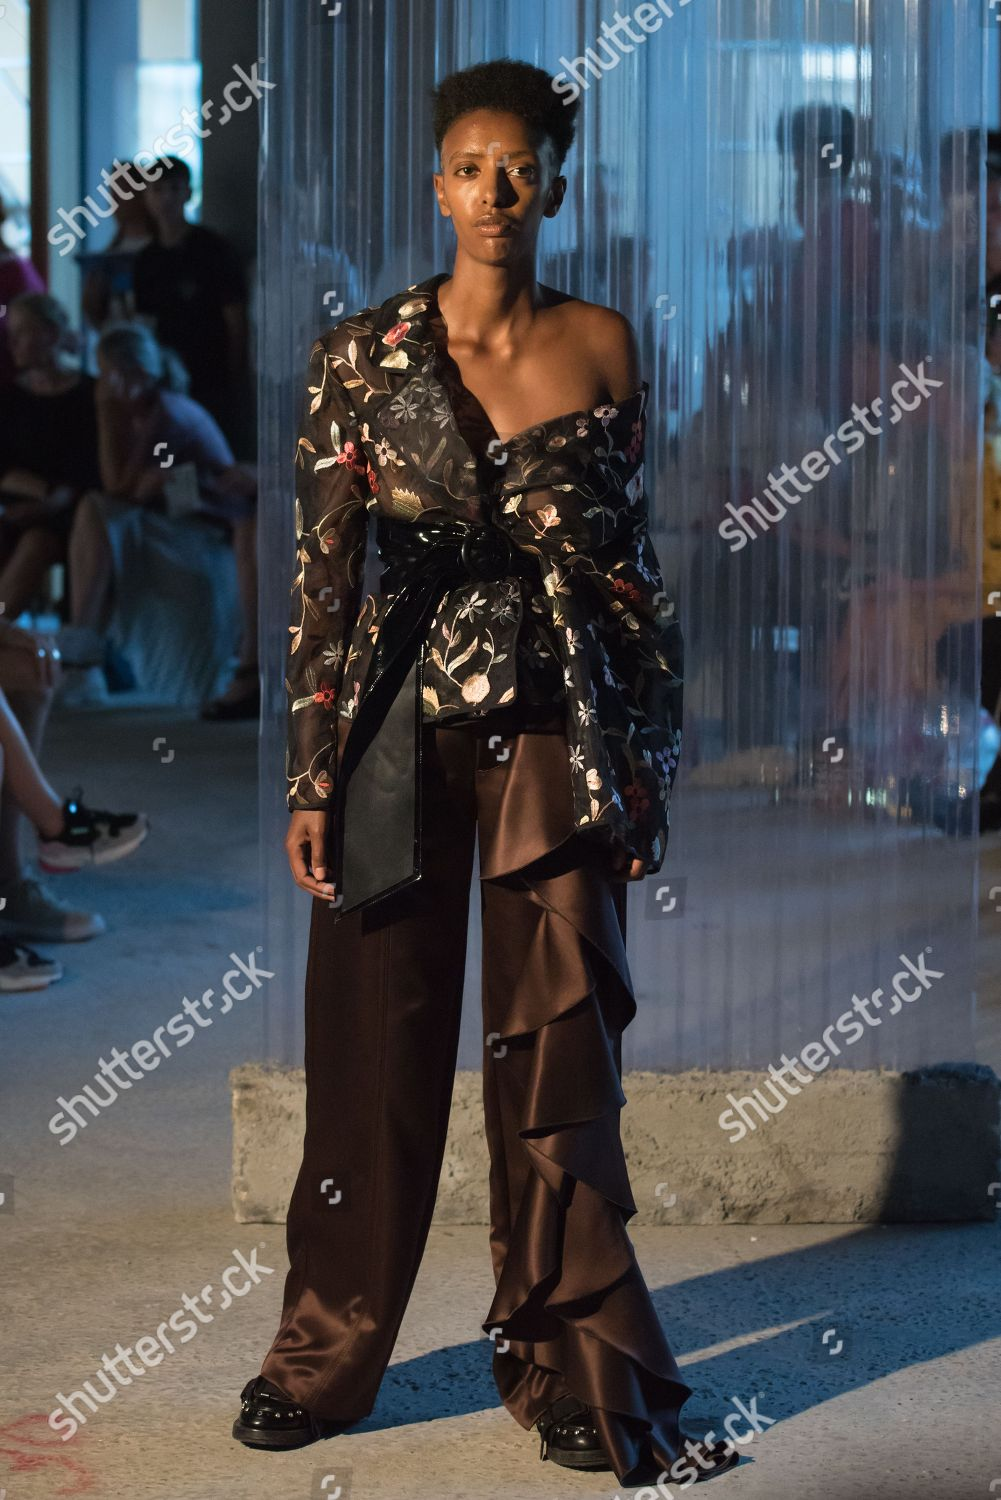 Model On Catwalk Editorial Stock Photo Stock Image Shutterstock